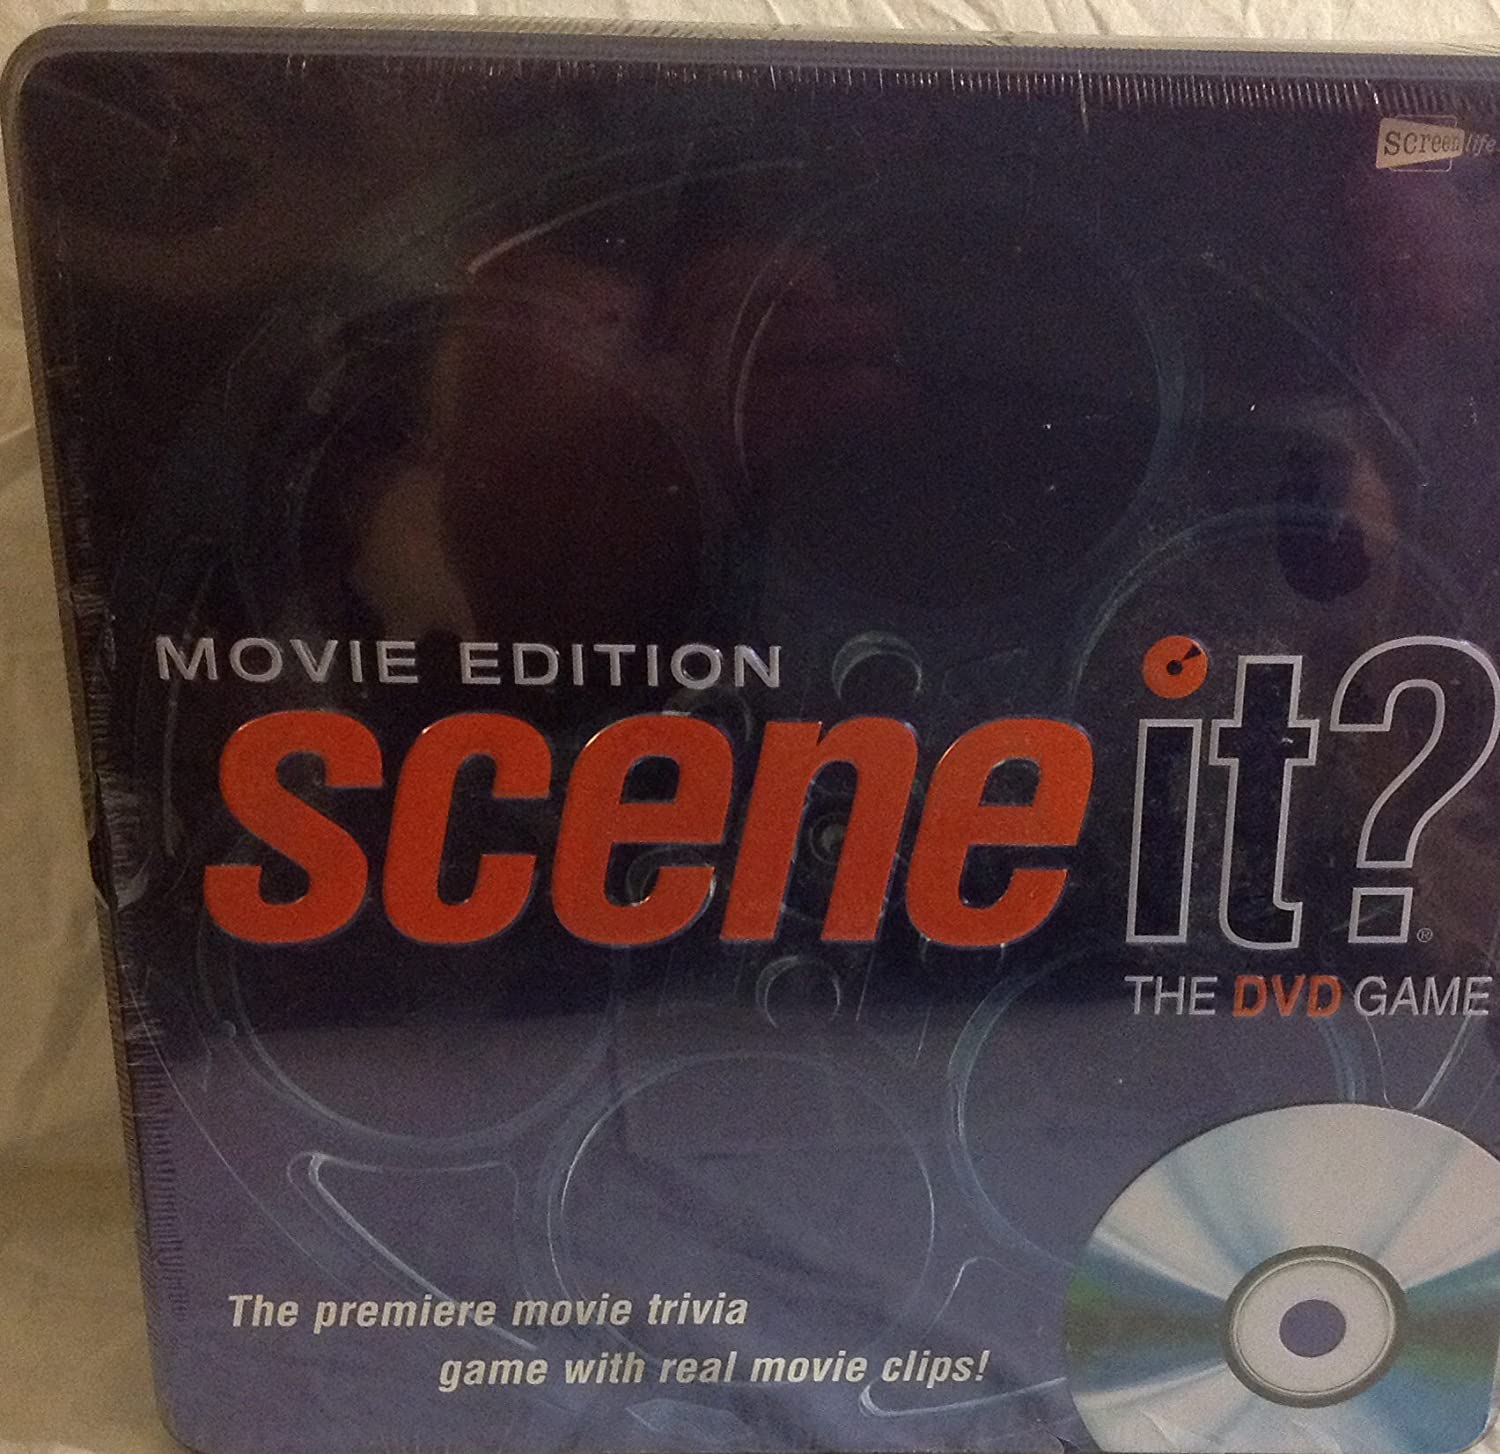 Movie Edition Scene It? The DVD Game in a Collectible Tin Box by Screenlife